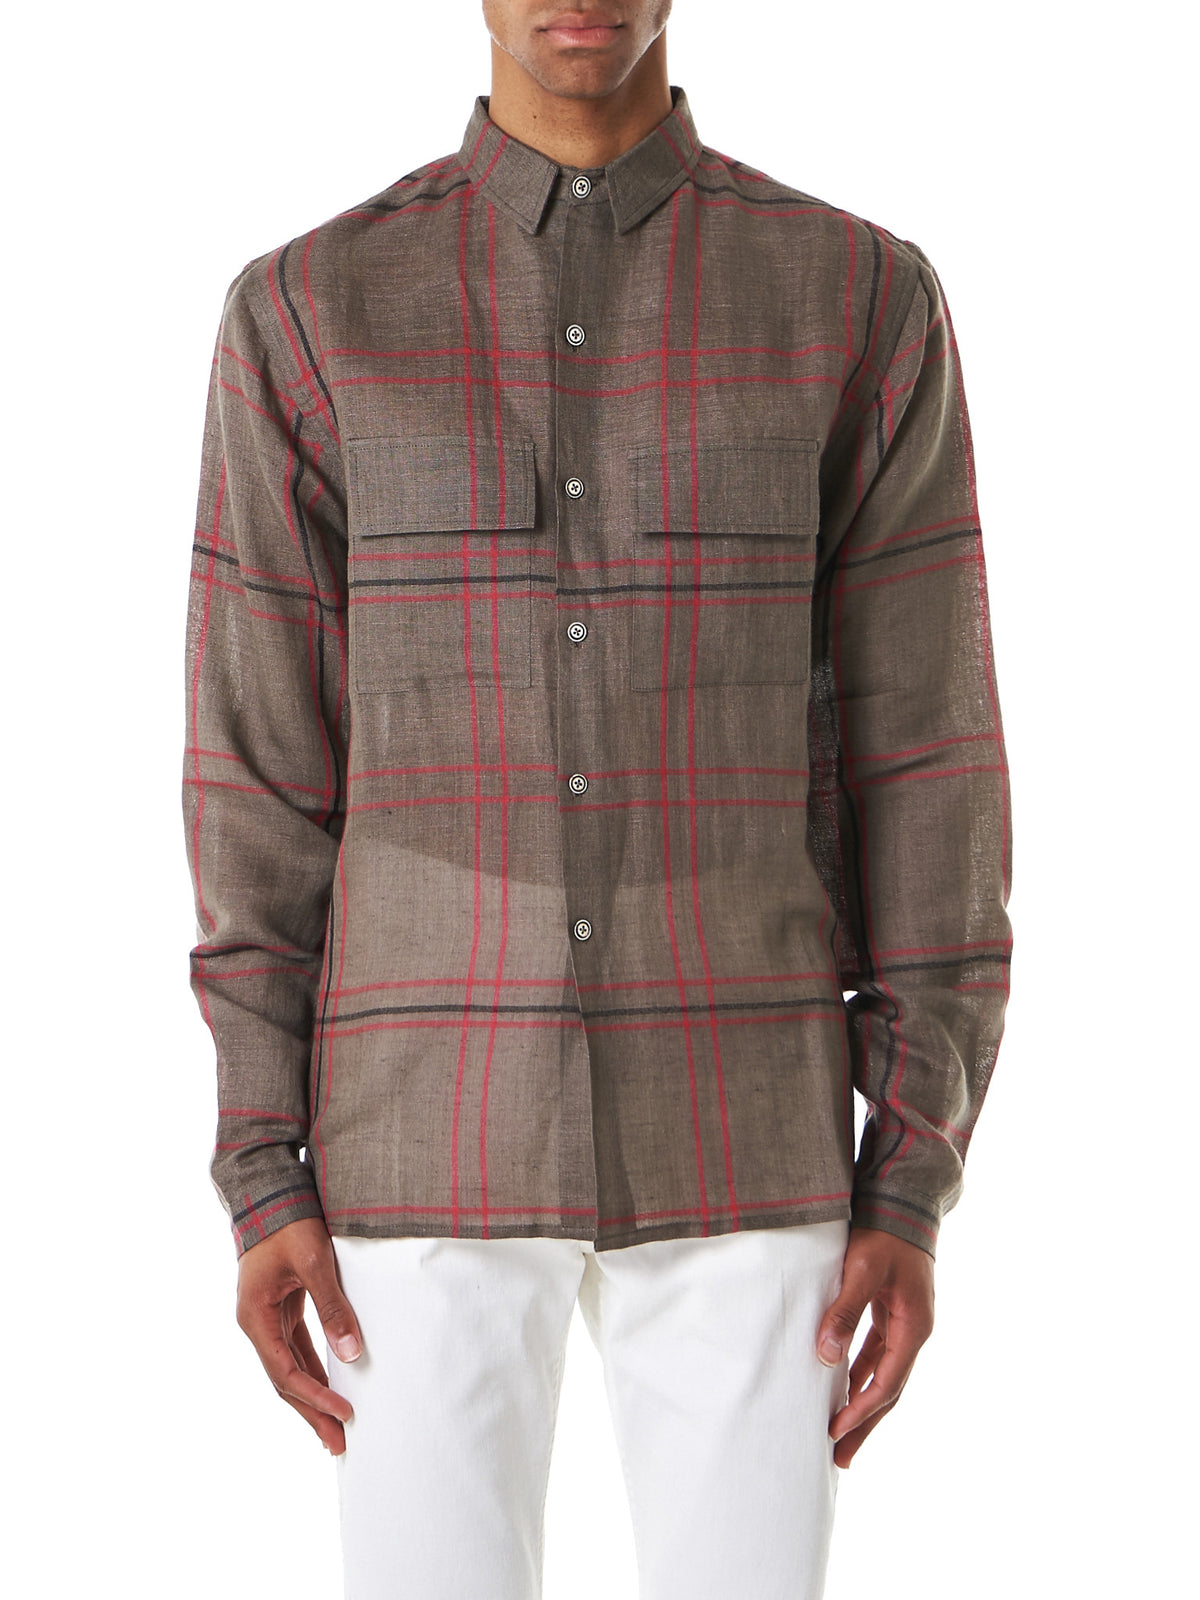 Double-Pocket Flannel (GAUCHO-KHAKI-RUBY-BLACK) - H. Lorenzo